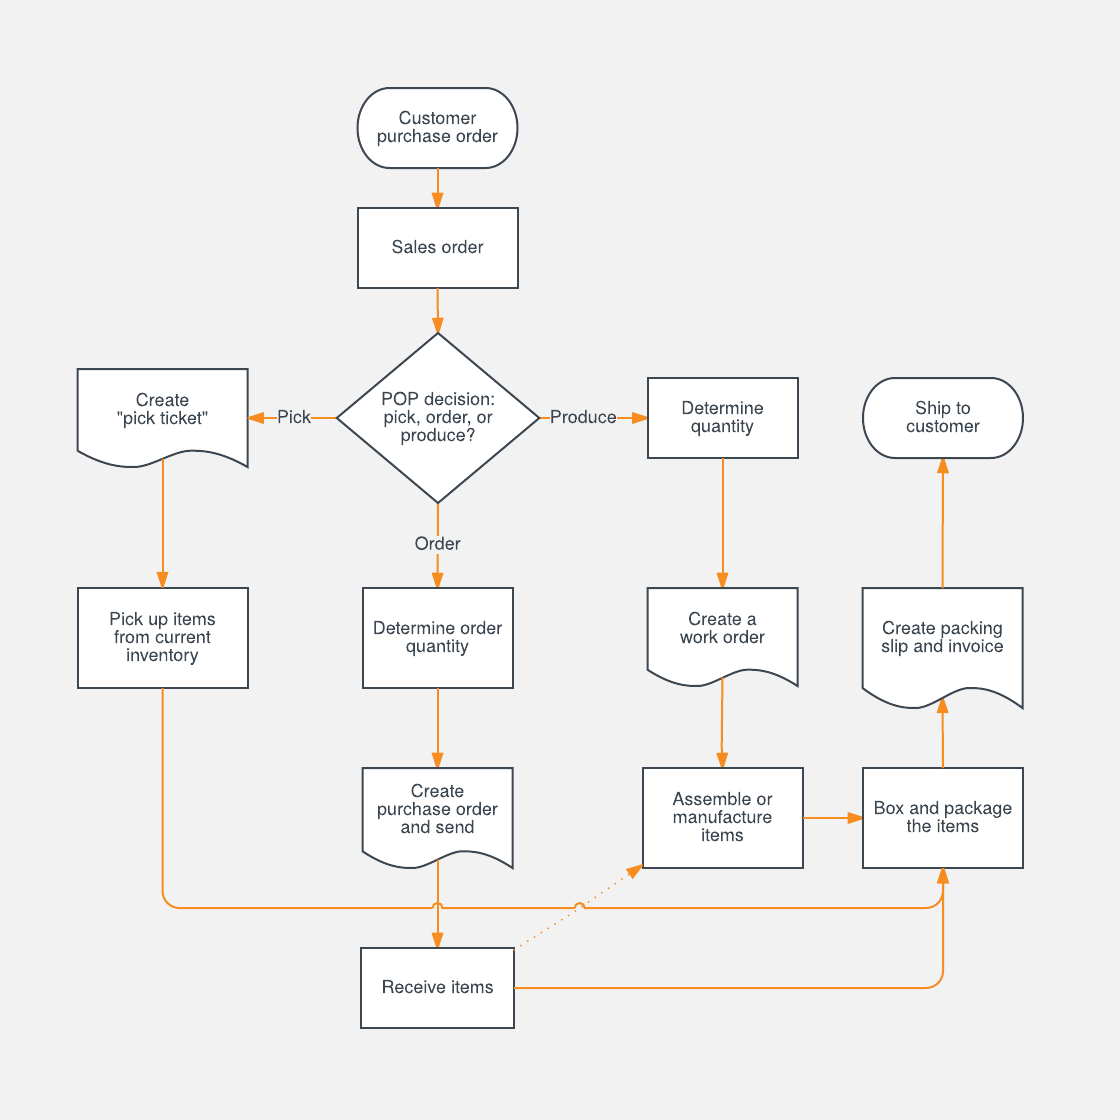 19 Awesome Purchase Order Workflow Diagram Design Ideas